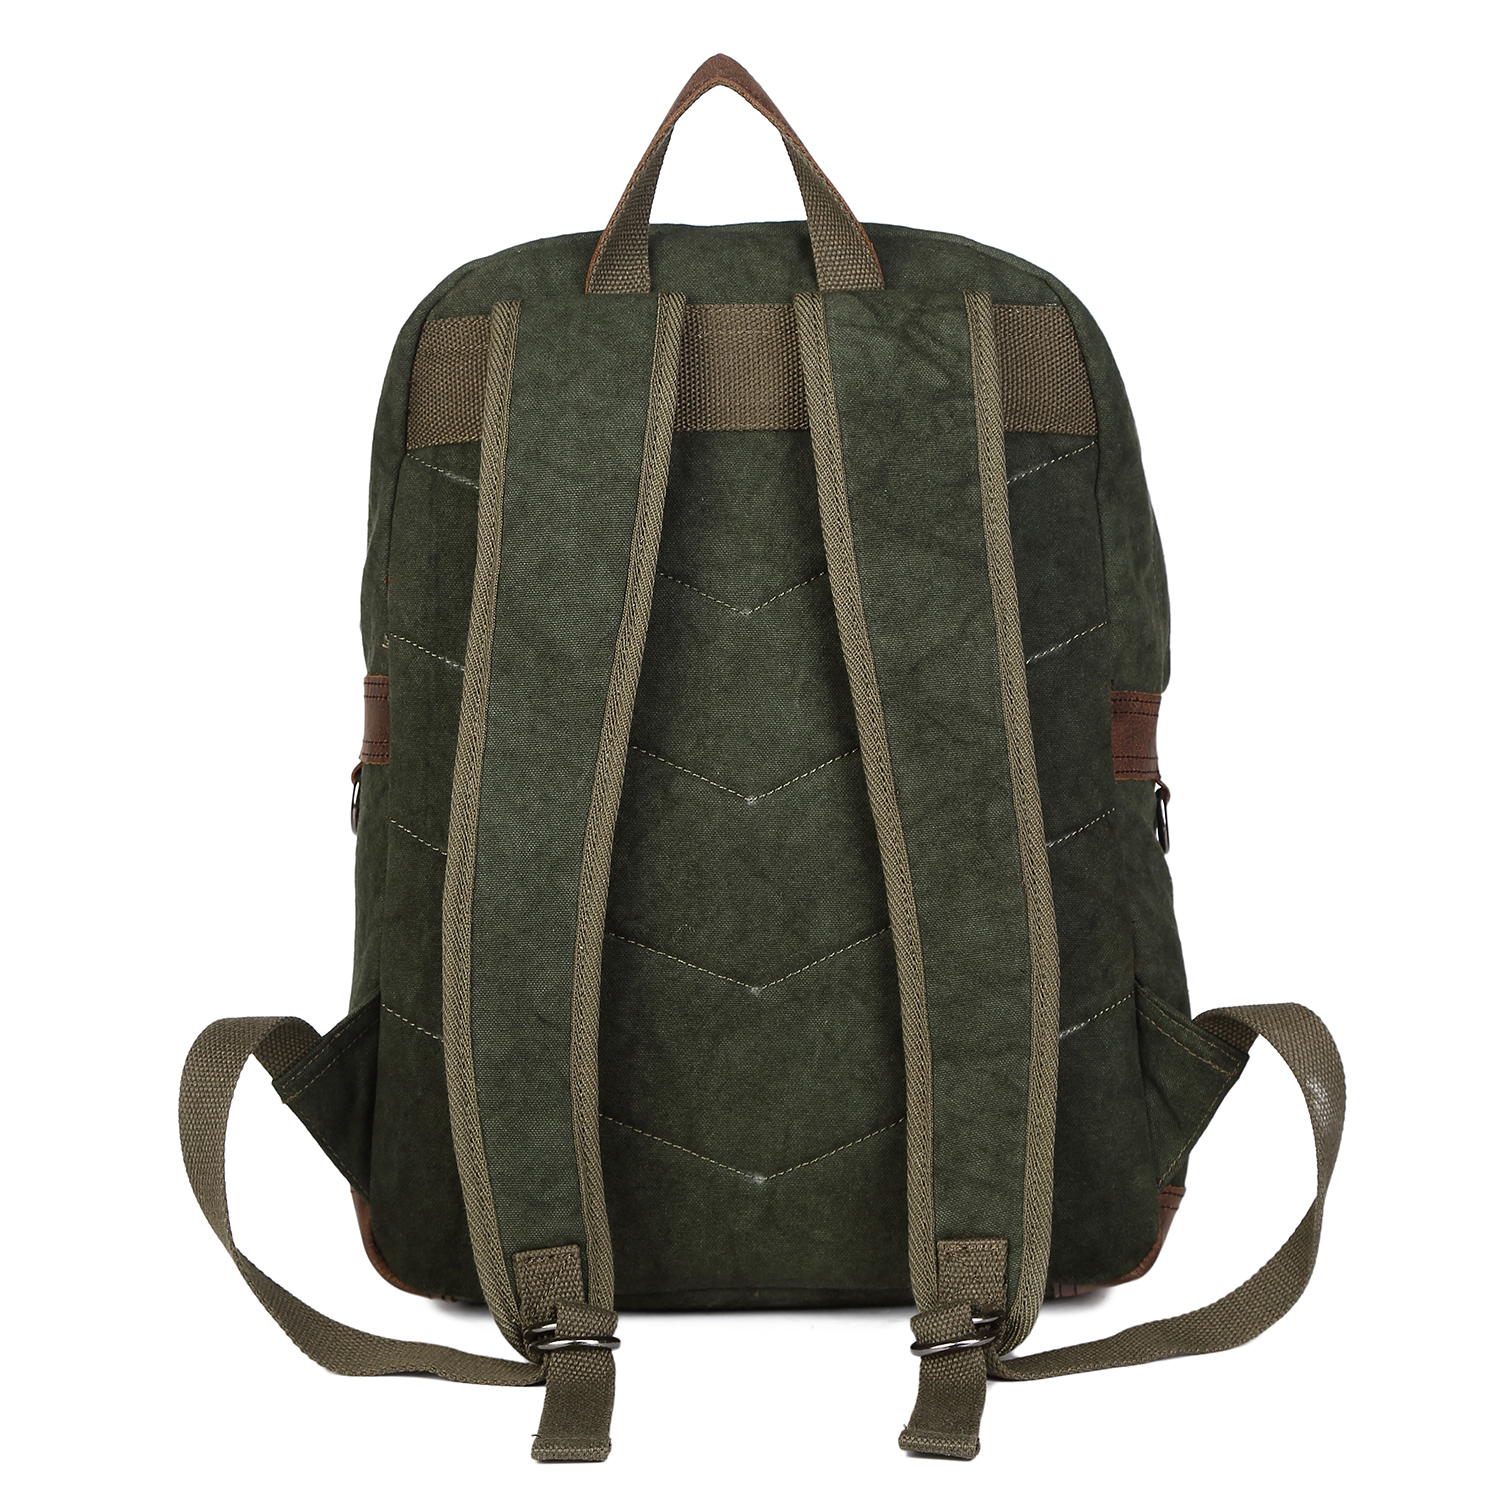 men 39 s vintage canvas leather 15 backpack rucksack laptop. Black Bedroom Furniture Sets. Home Design Ideas